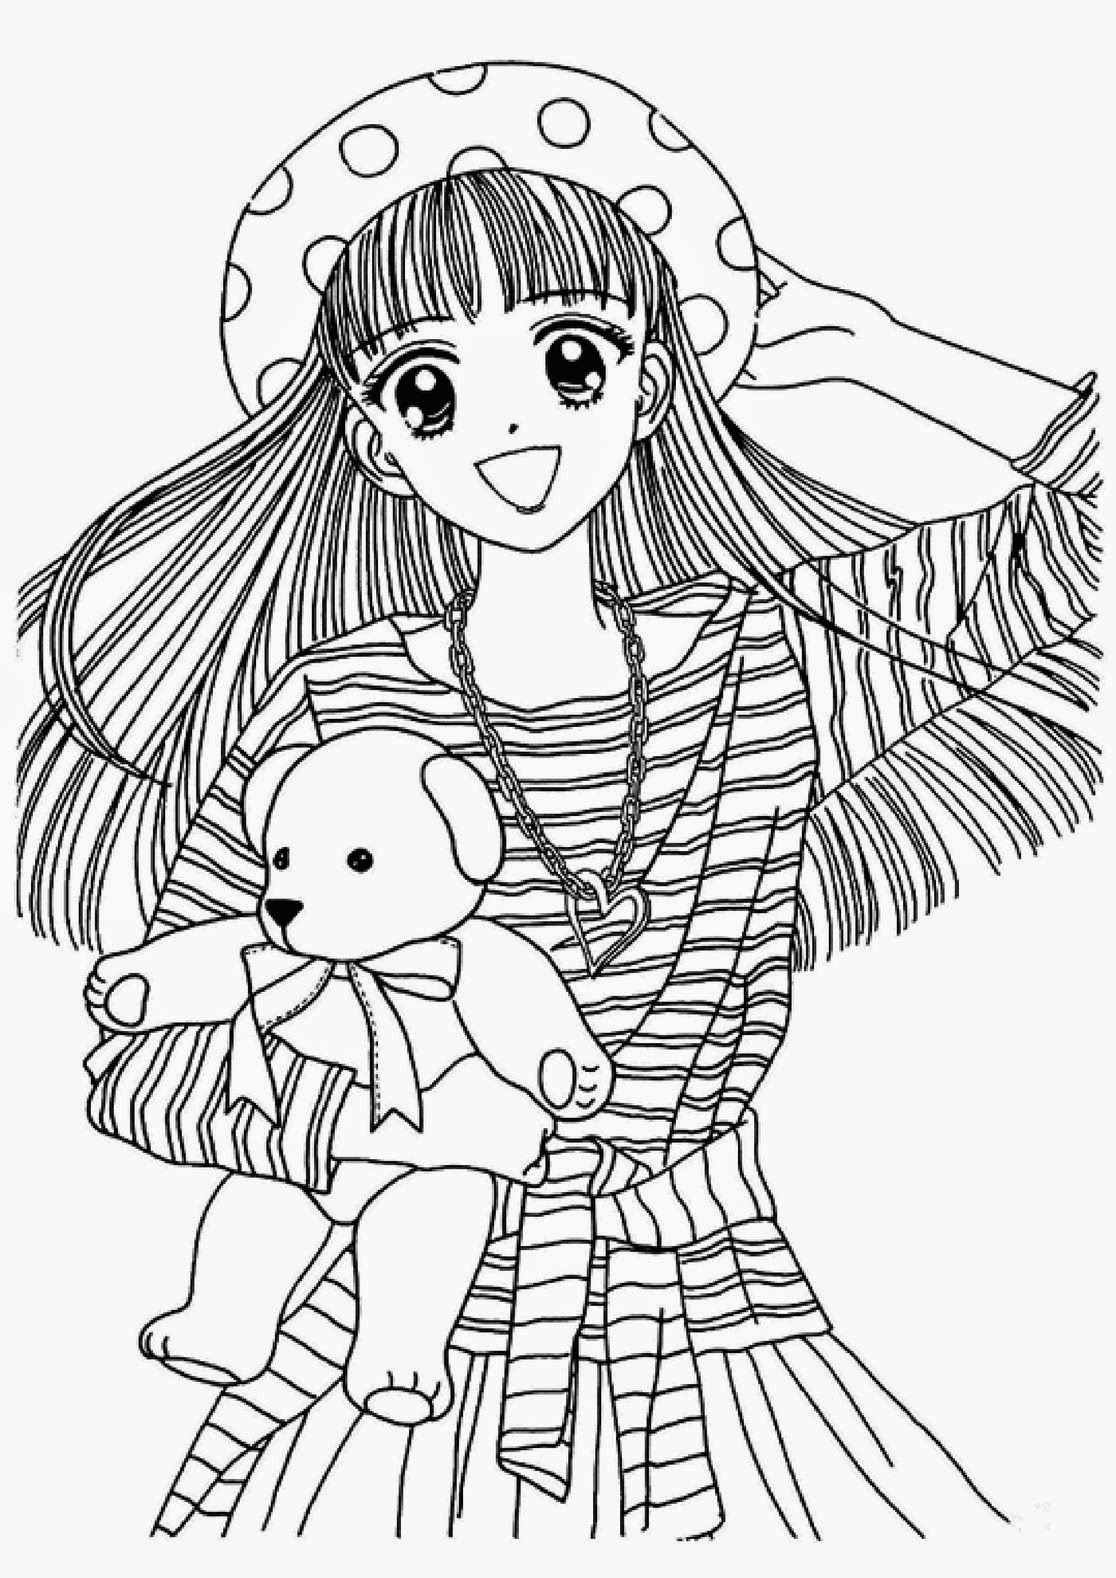 coloring pages of anime anime coloring pages best coloring pages for kids anime pages of coloring